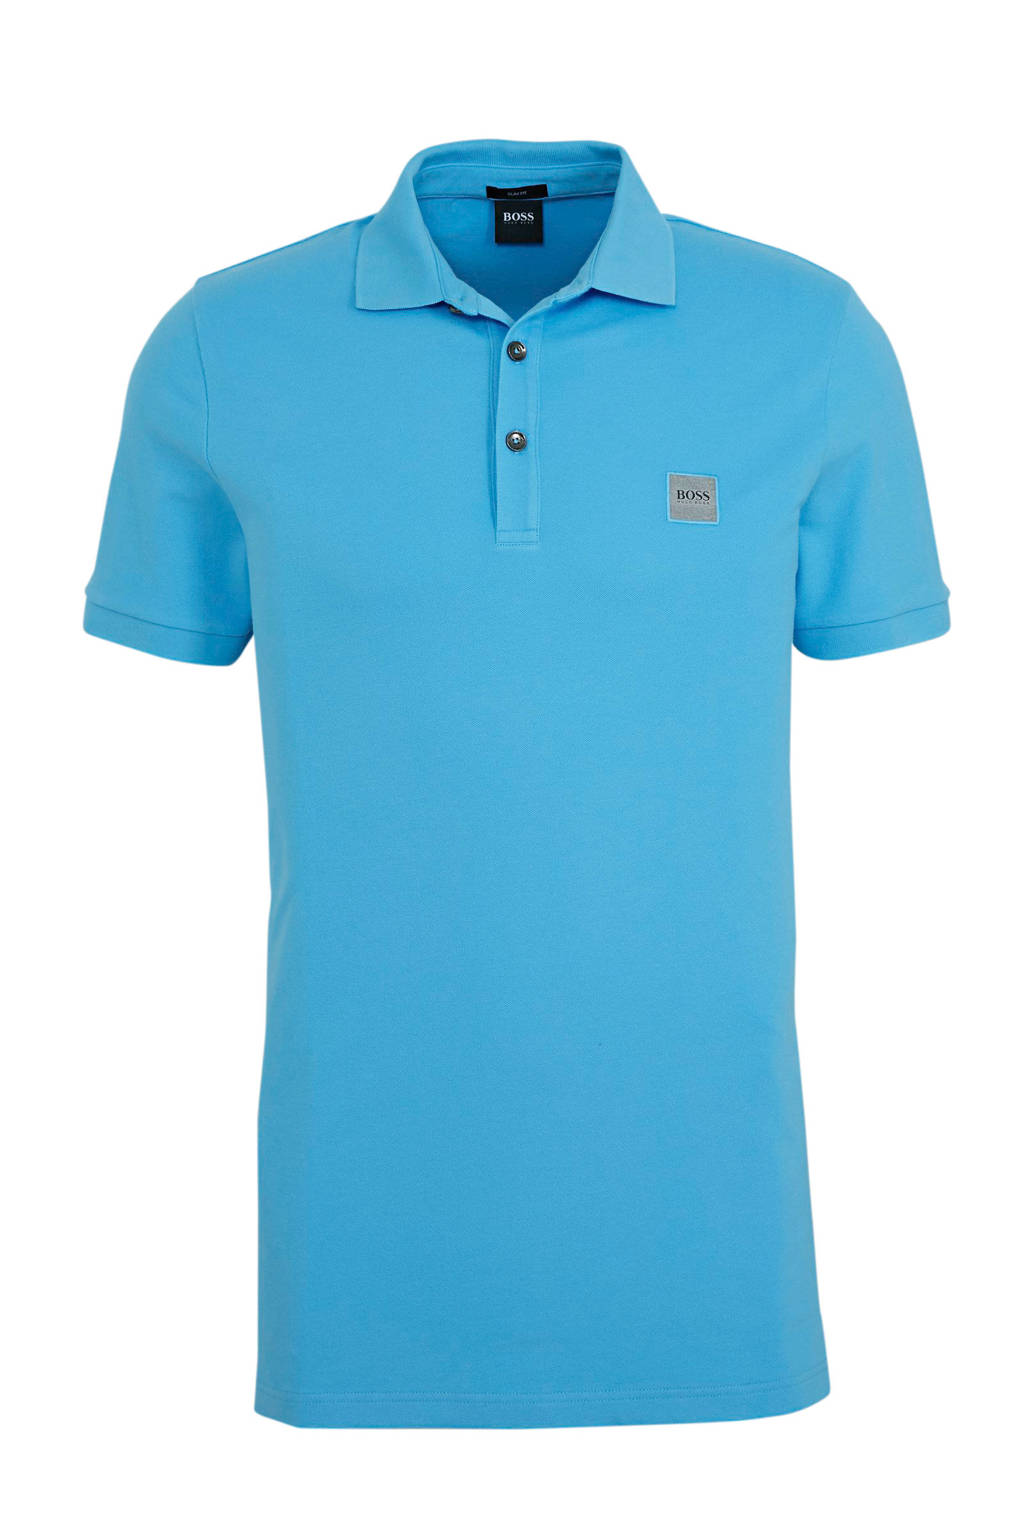 BOSS Casual slim fit polo lichtblauw, Blauw